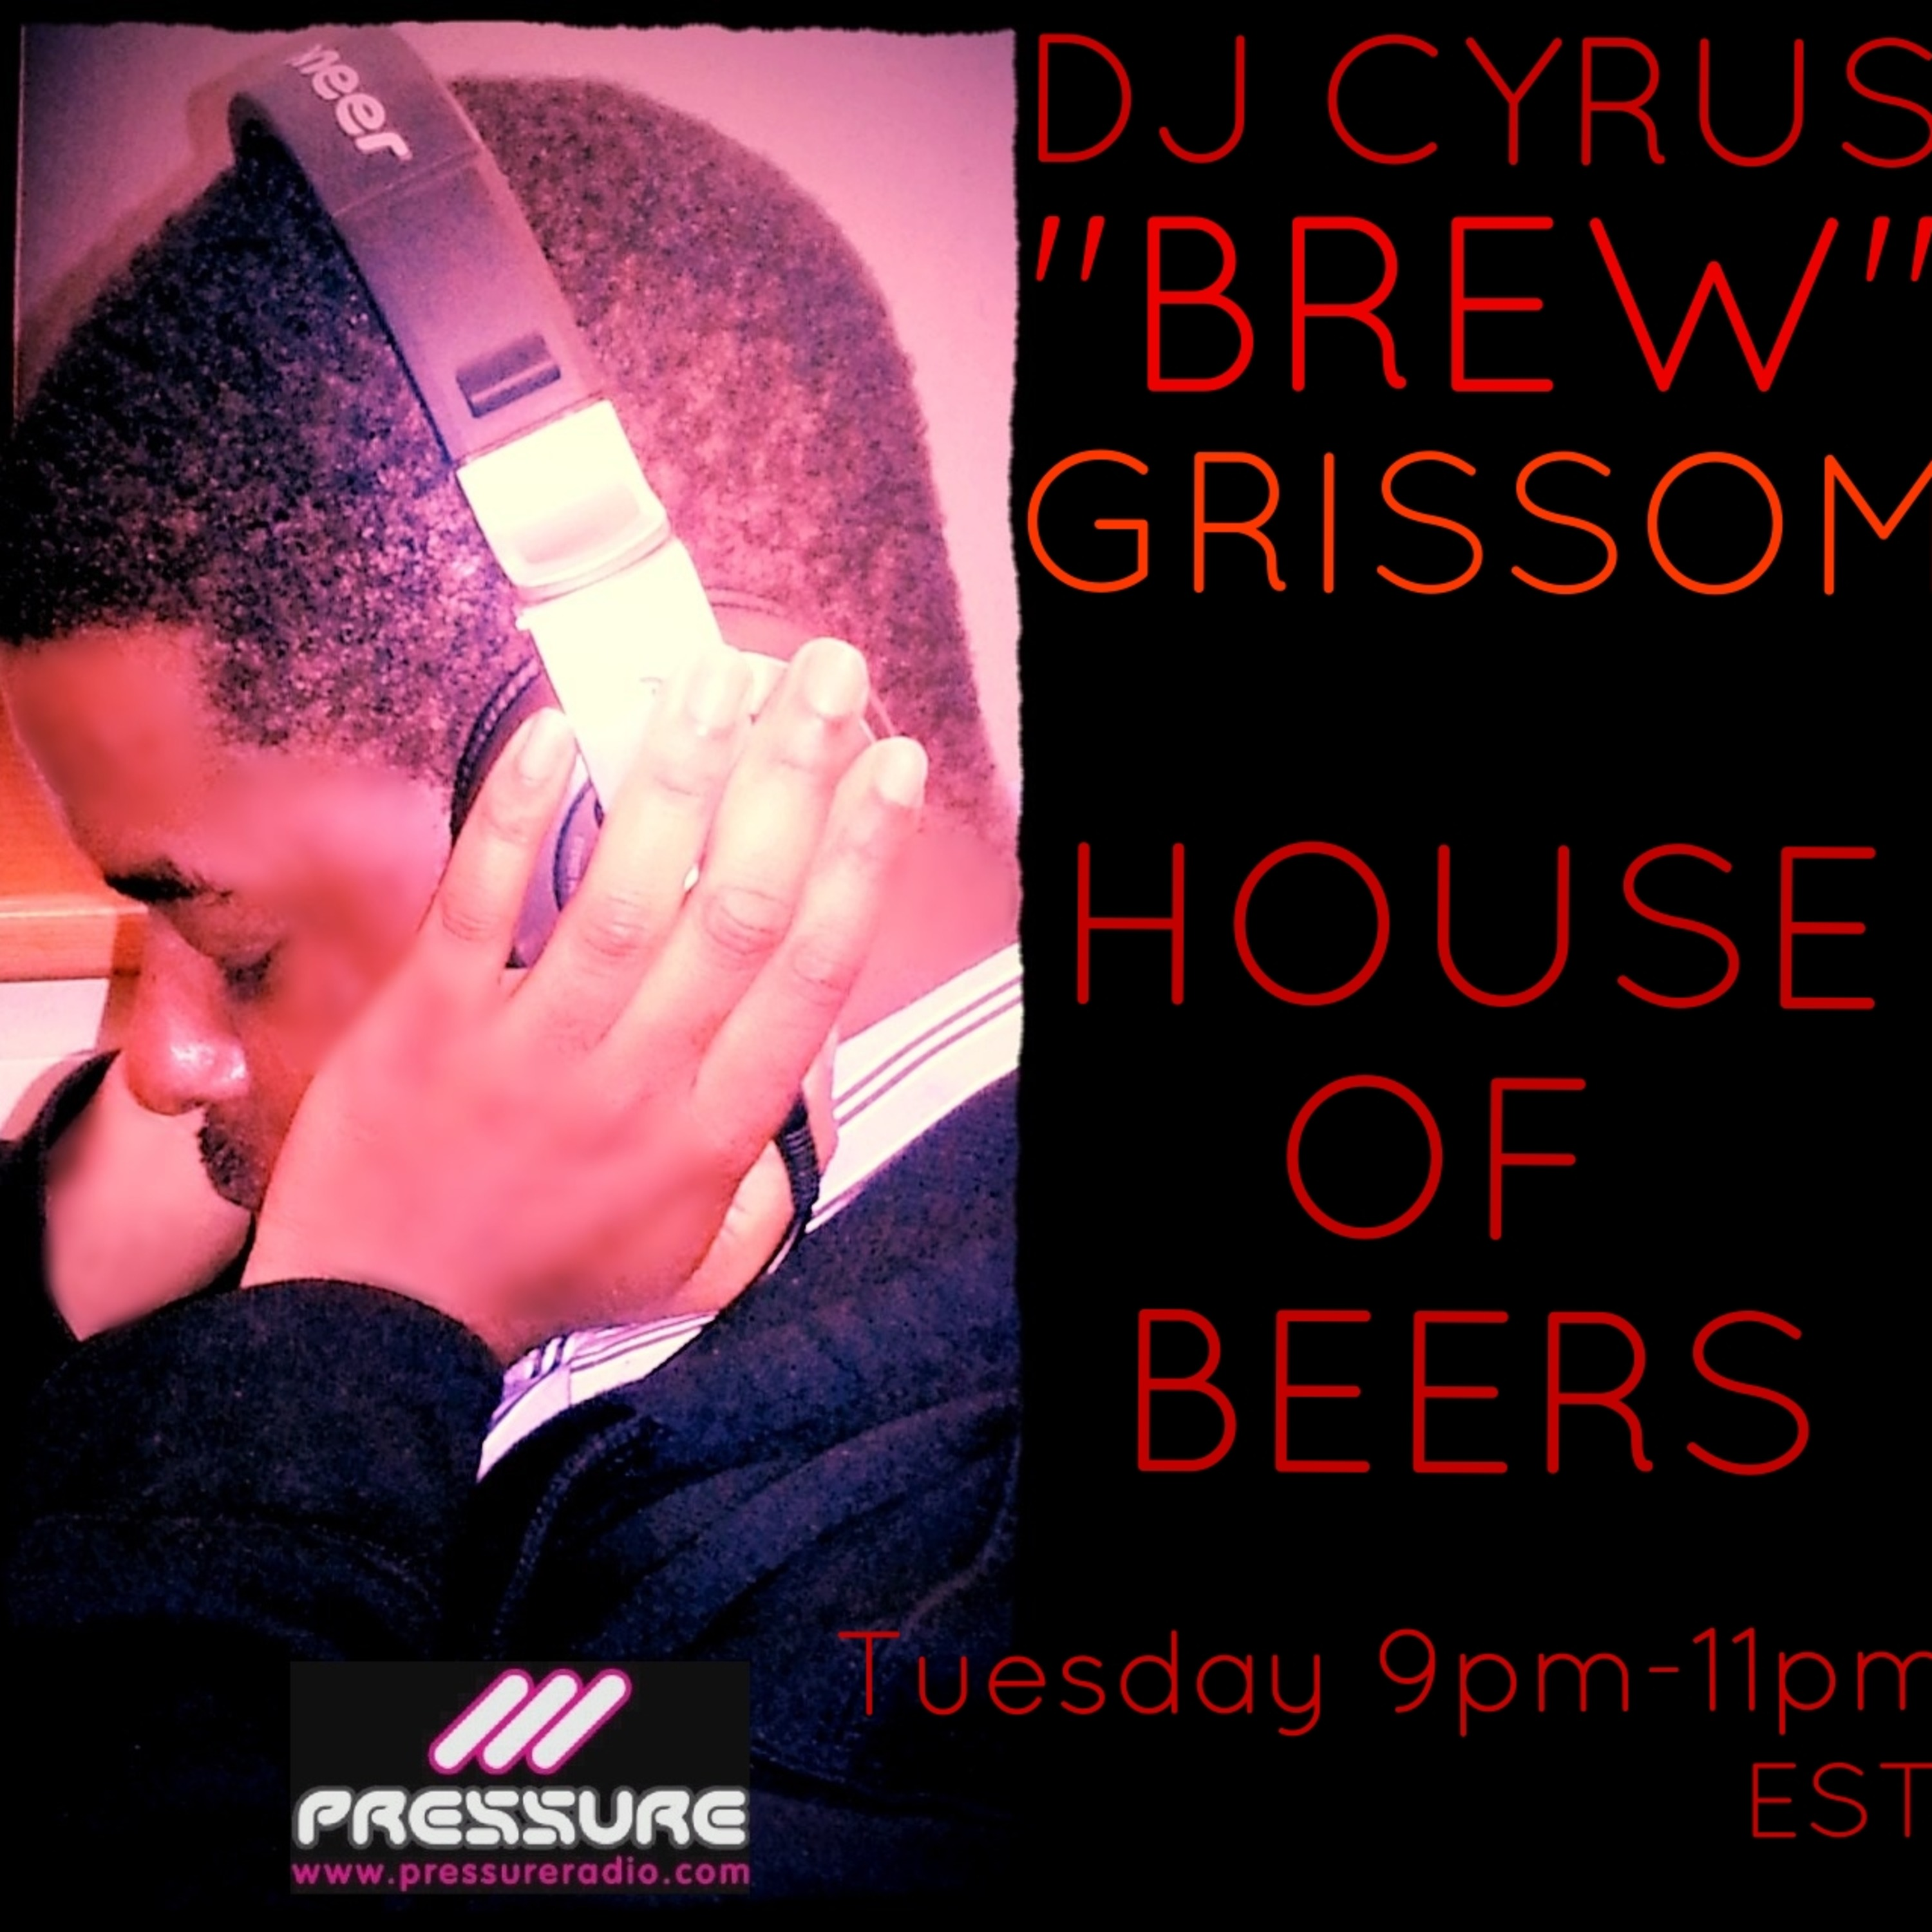 Episode 4: House Of Beers 02/02/2021